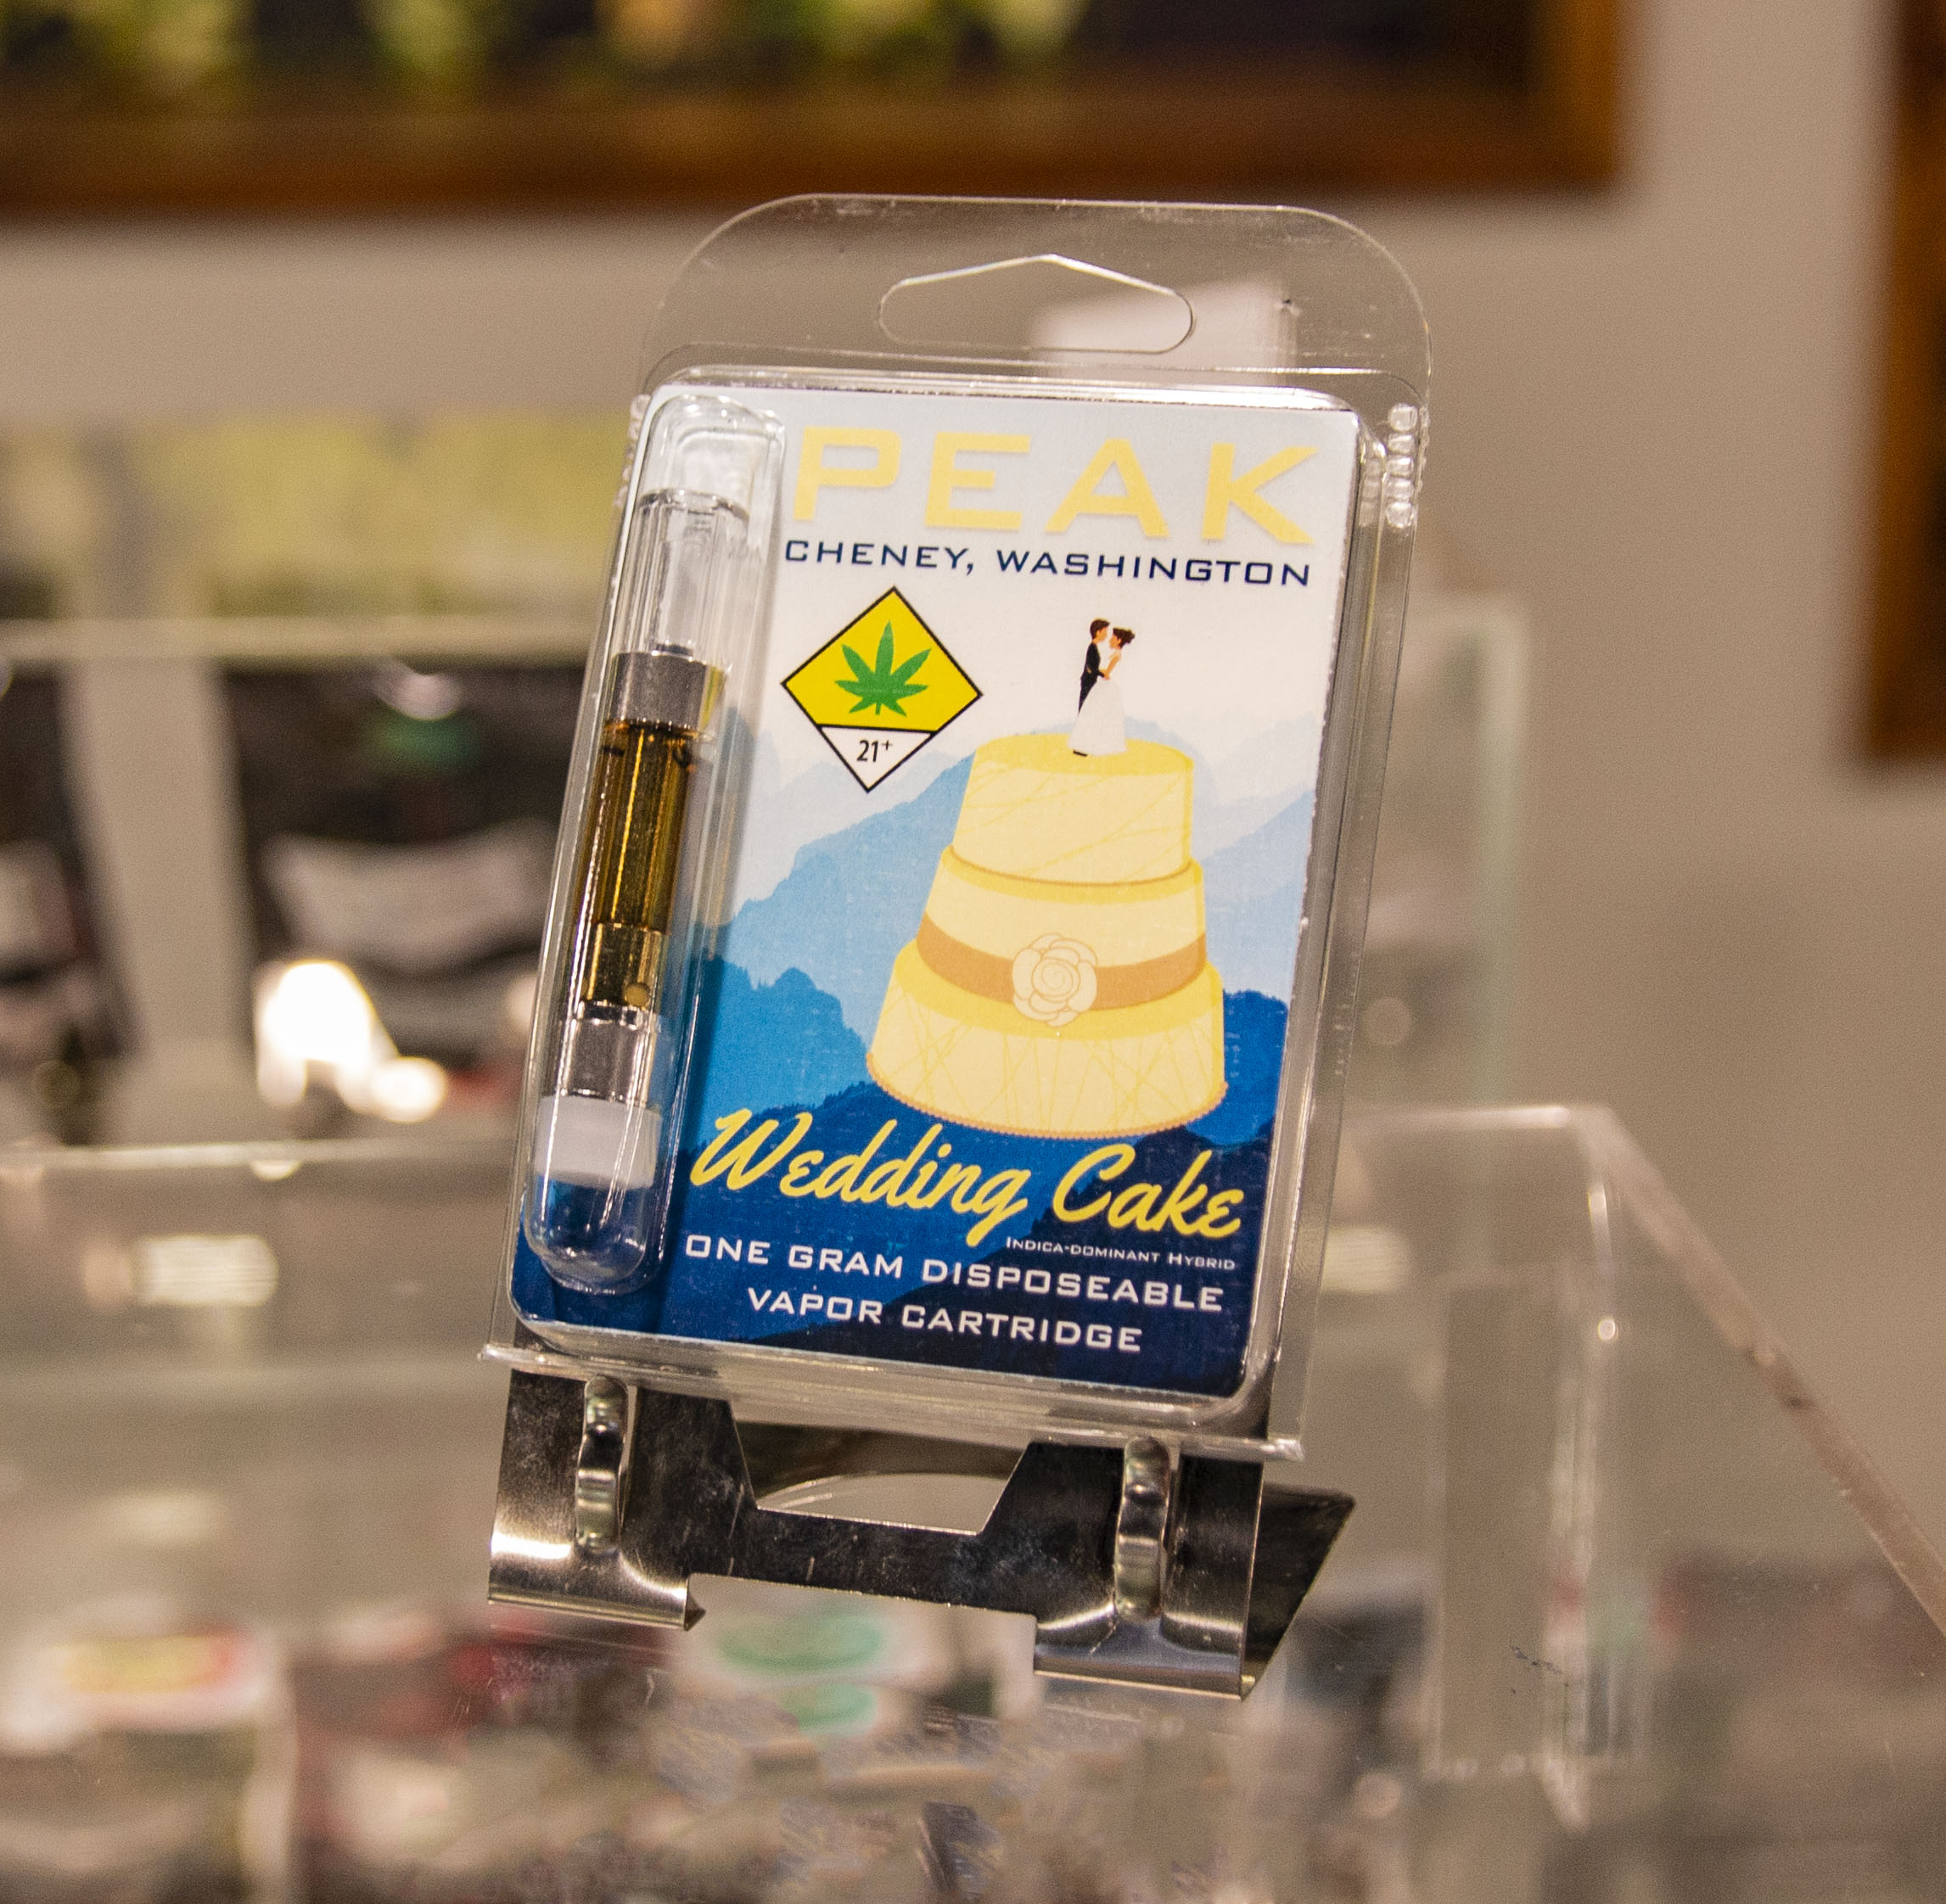 The Budtender's Review Corner; Peak's Wedding Cake Cartridge